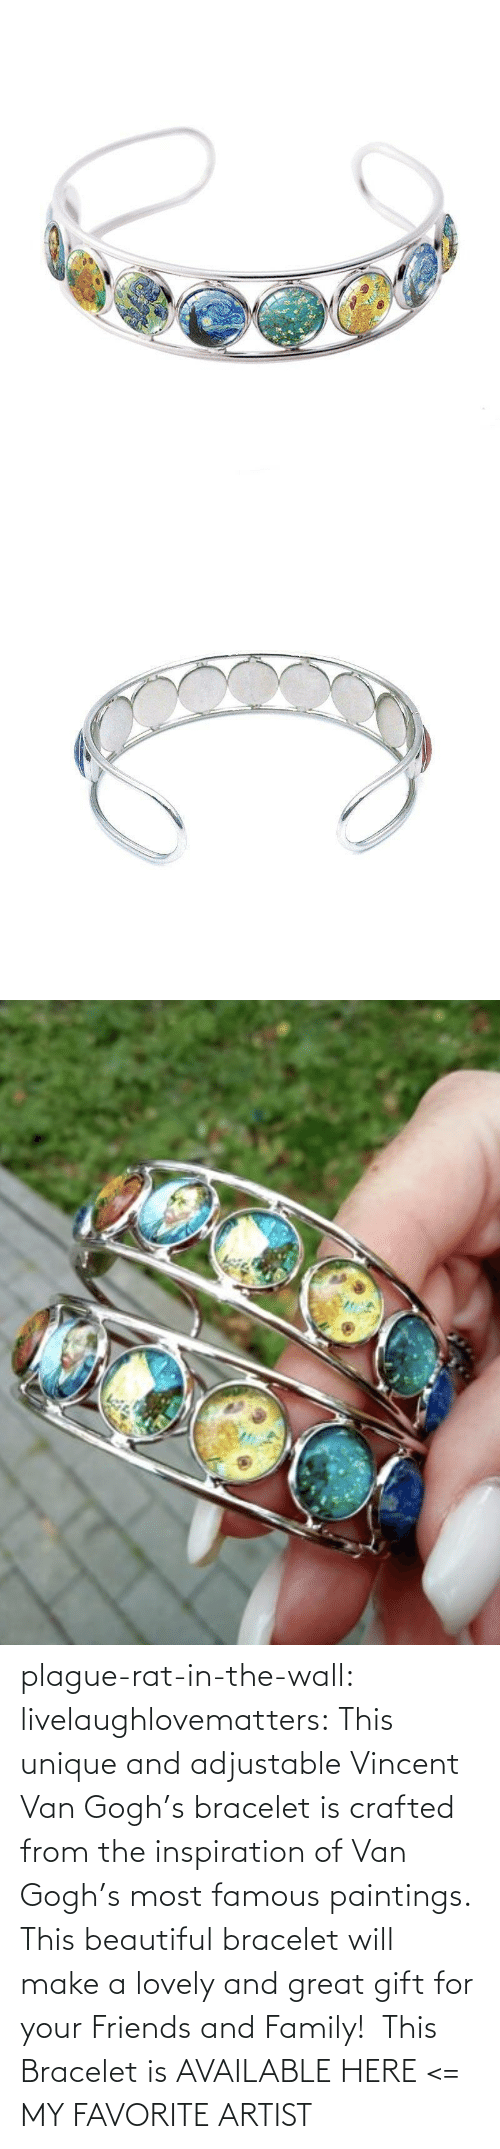 Favorite: plague-rat-in-the-wall:  livelaughlovematters: This unique and adjustable Vincent Van Gogh's bracelet is crafted from the inspiration of Van Gogh's most famous paintings. This beautiful bracelet will make a lovely and great gift for your Friends and Family!  This Bracelet is AVAILABLE HERE <=  MY FAVORITE ARTIST